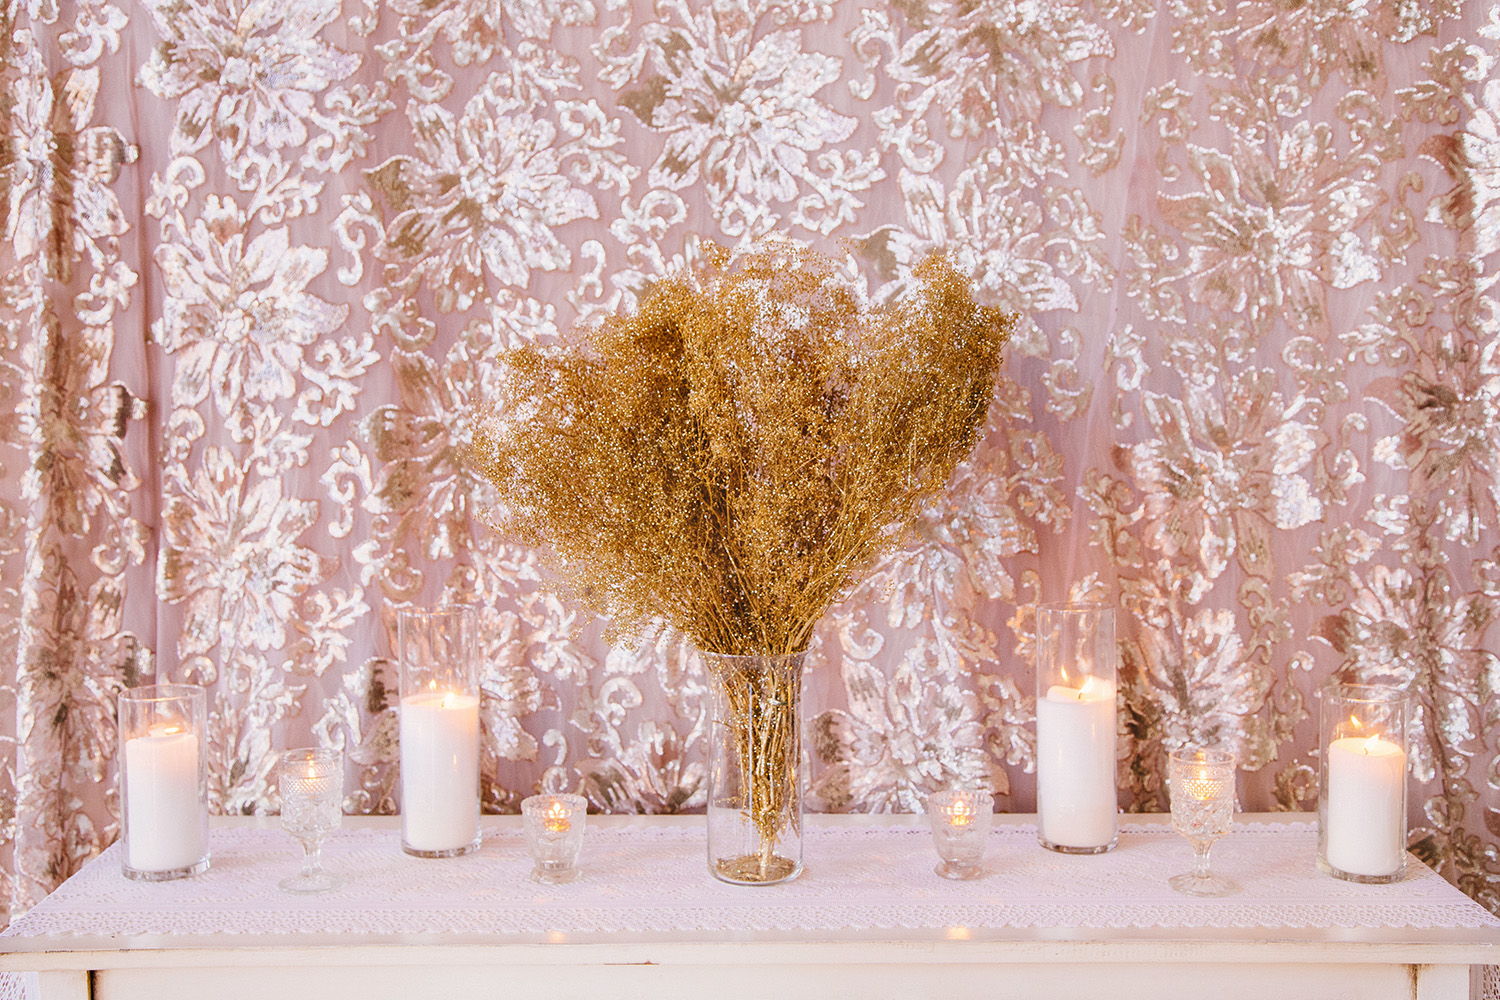 lily-fabric-ceremony-altar-0002-web.jpg